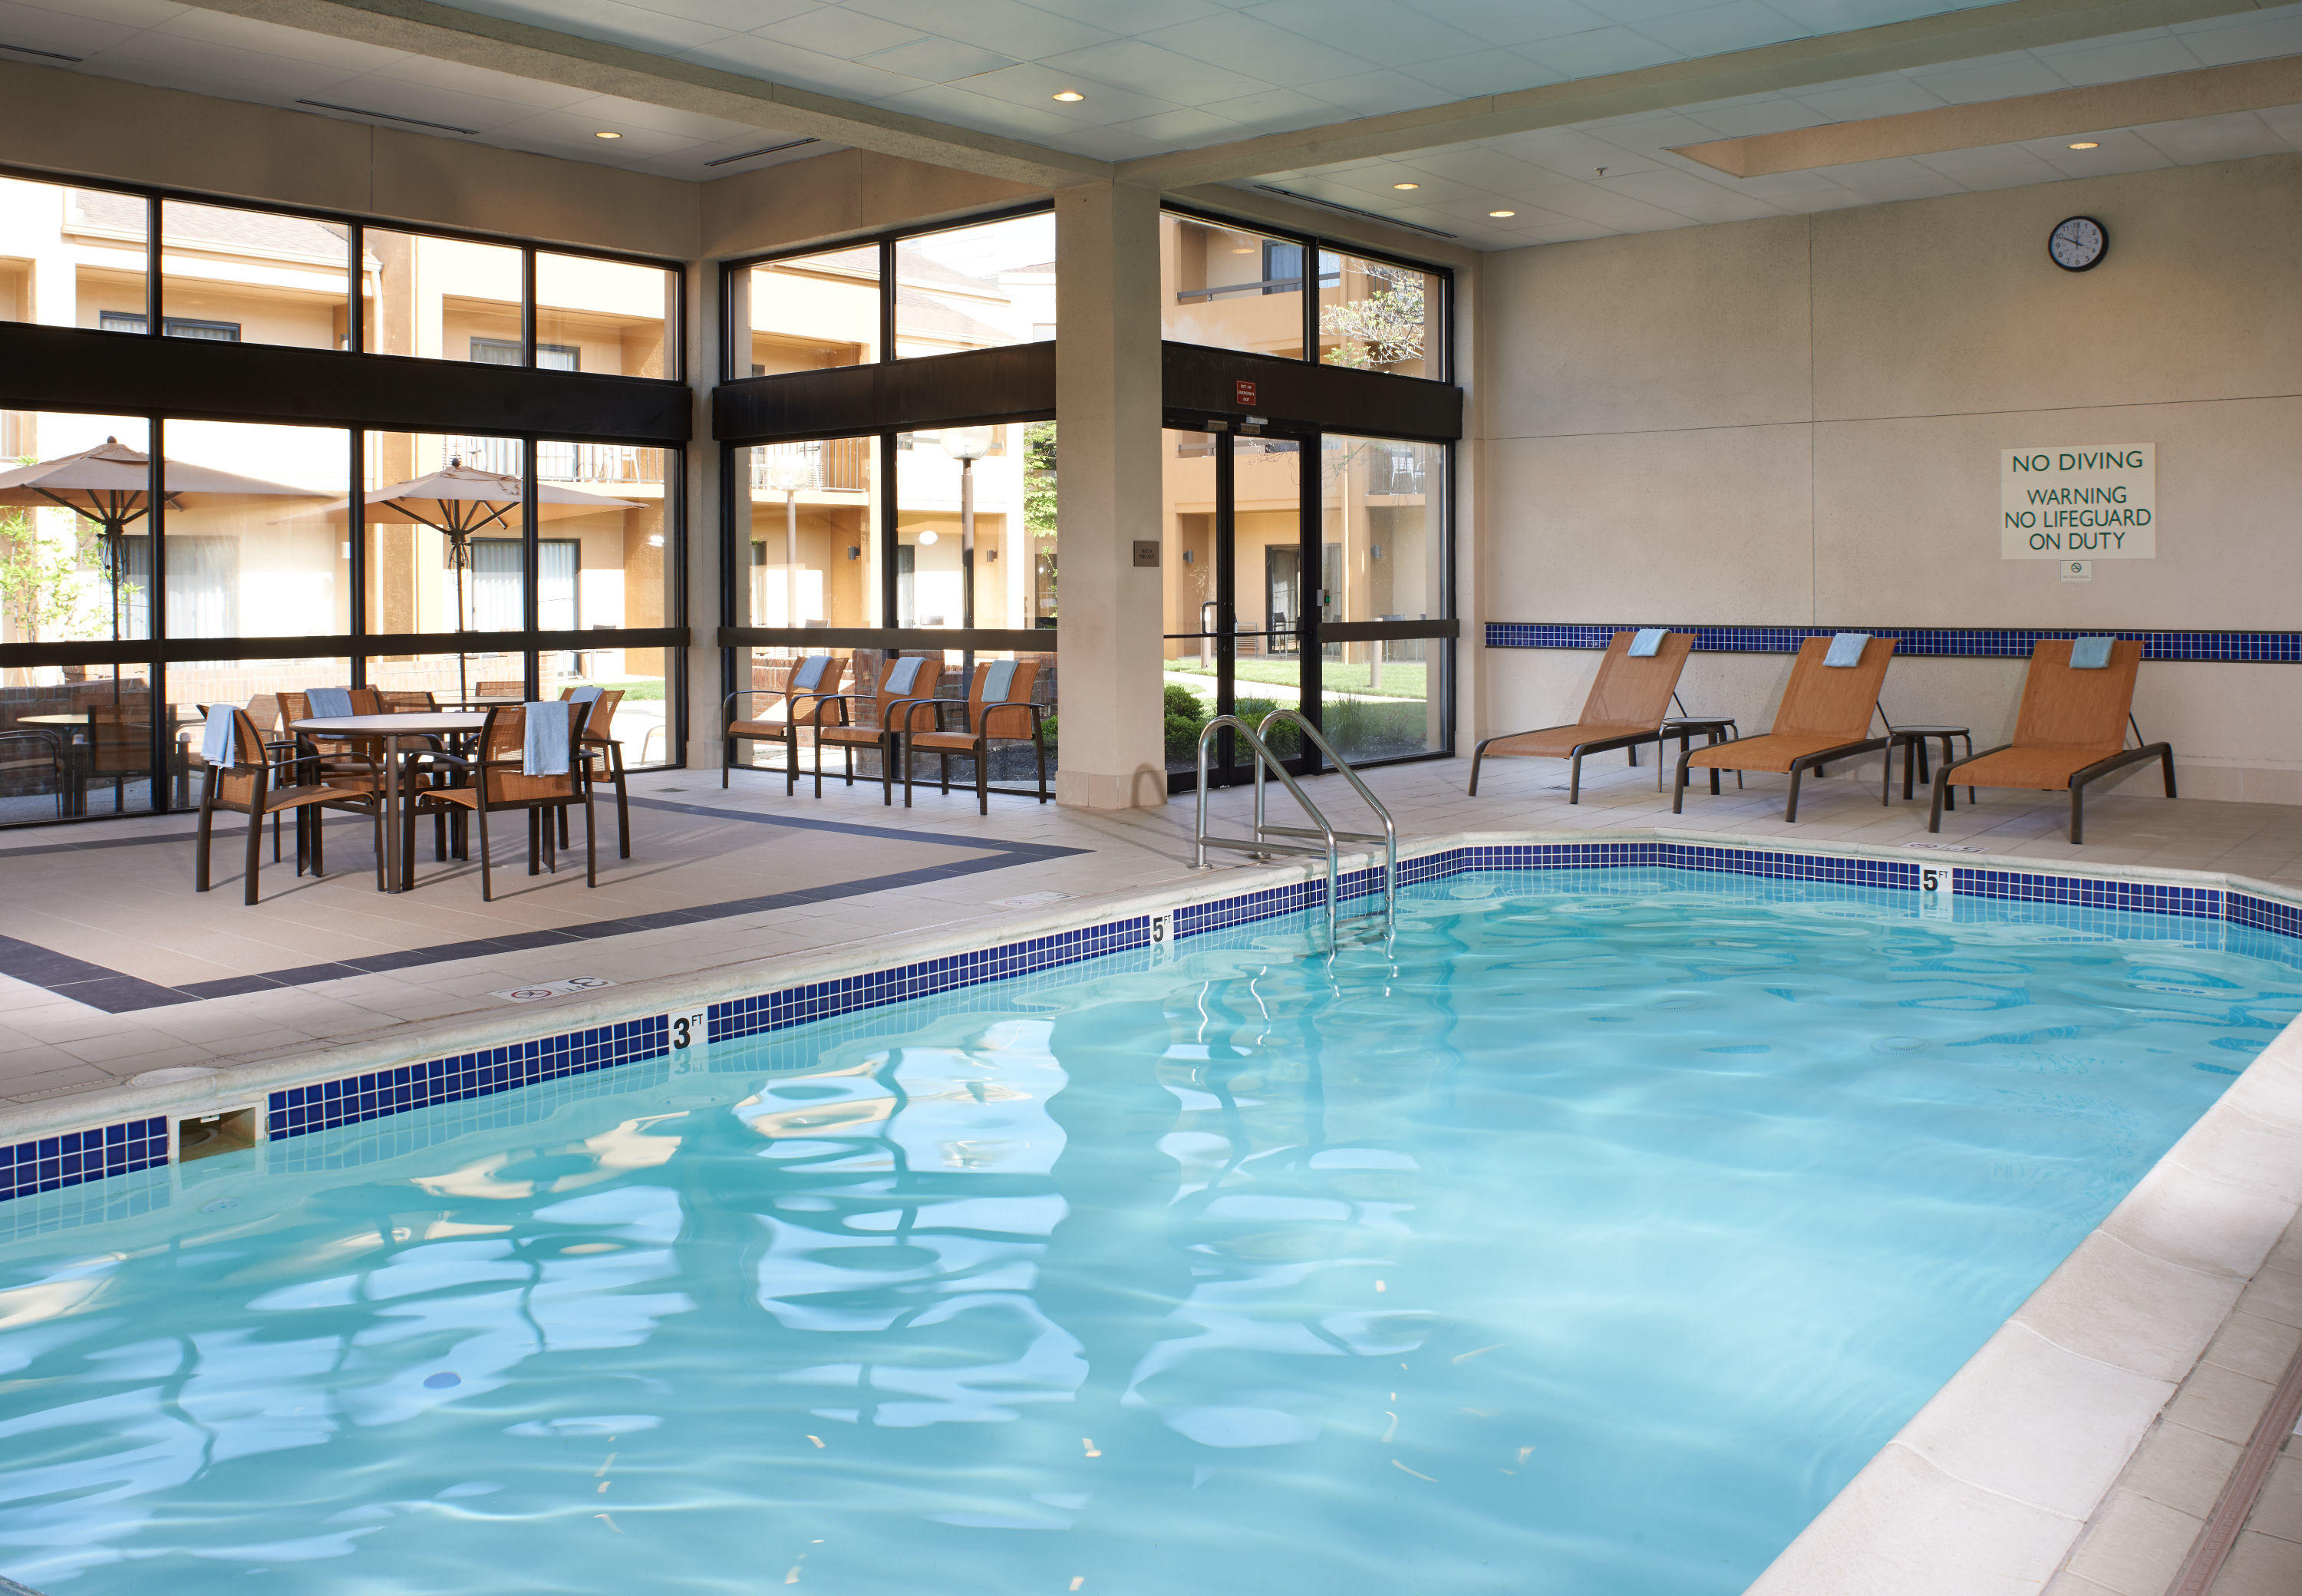 Hotels Near Dublin Zoo With Pool